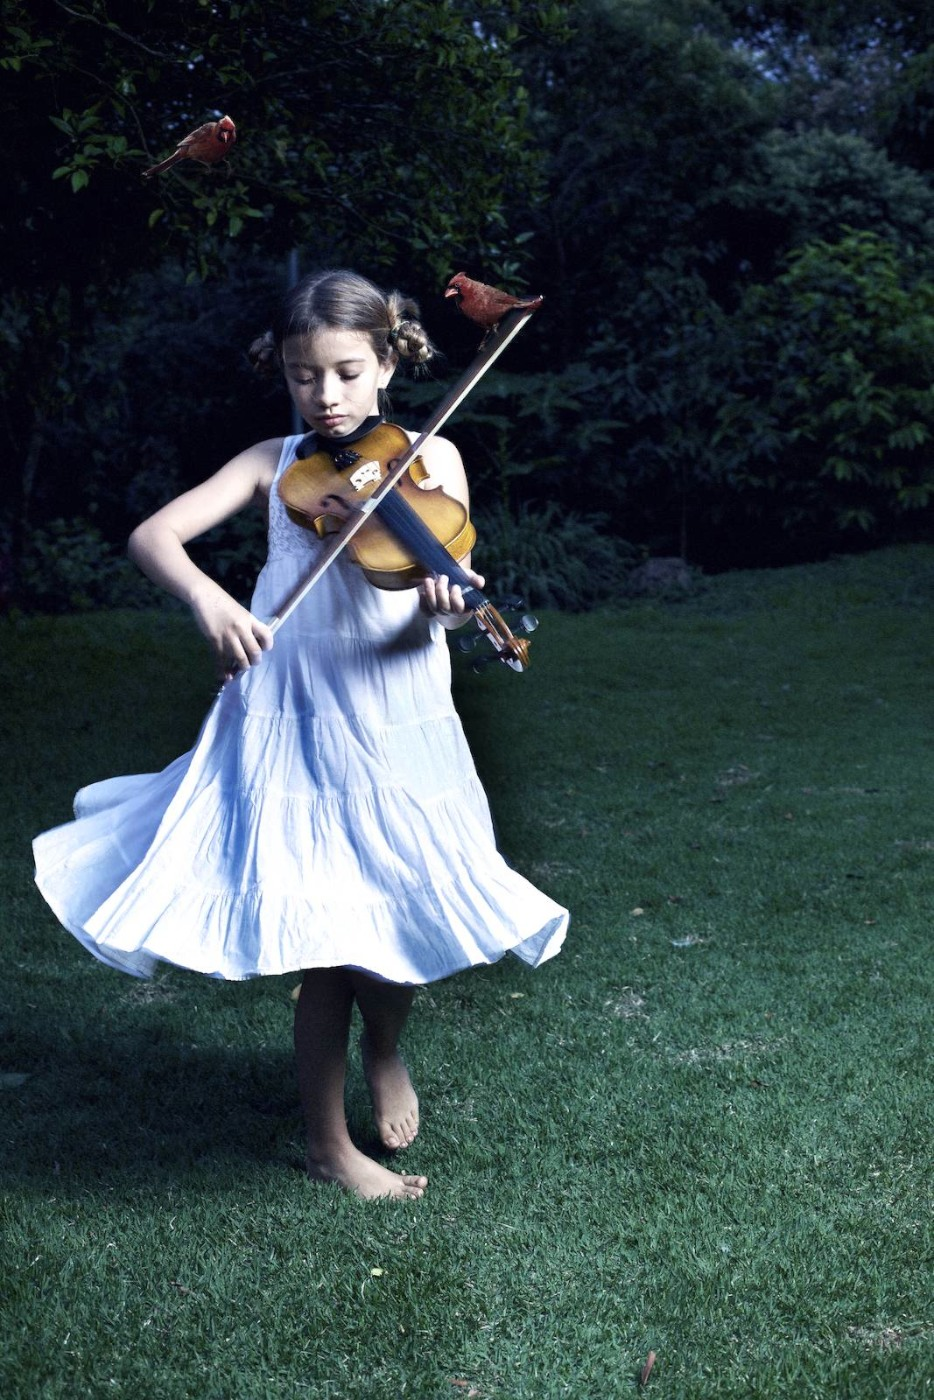 miami_fotographer_girls_birds_violin_dancing_forest